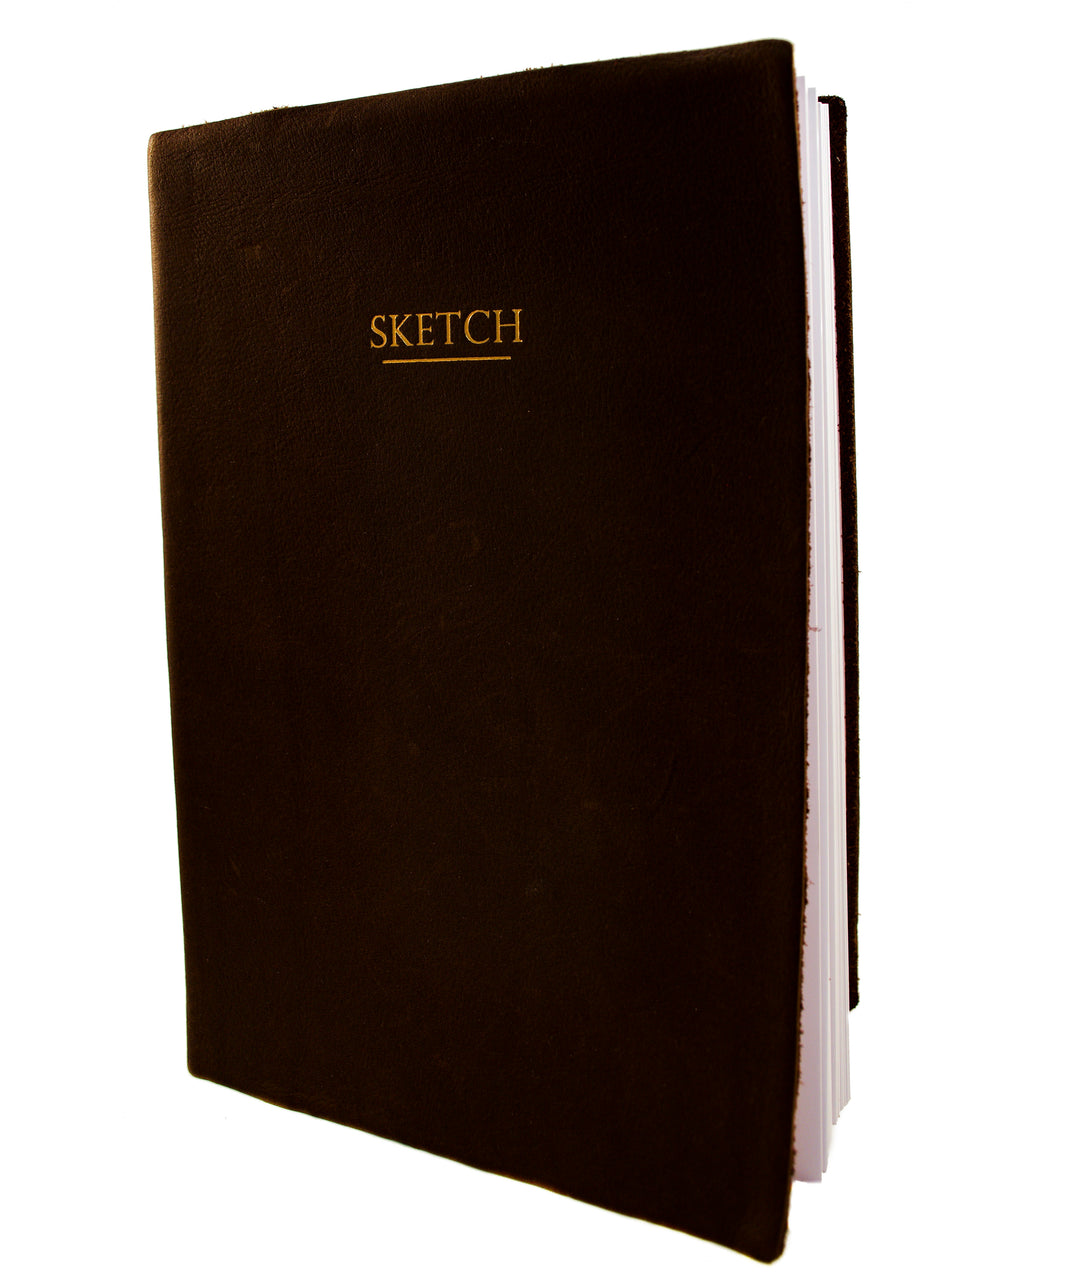 Sketch Book - Gold Title 17x24